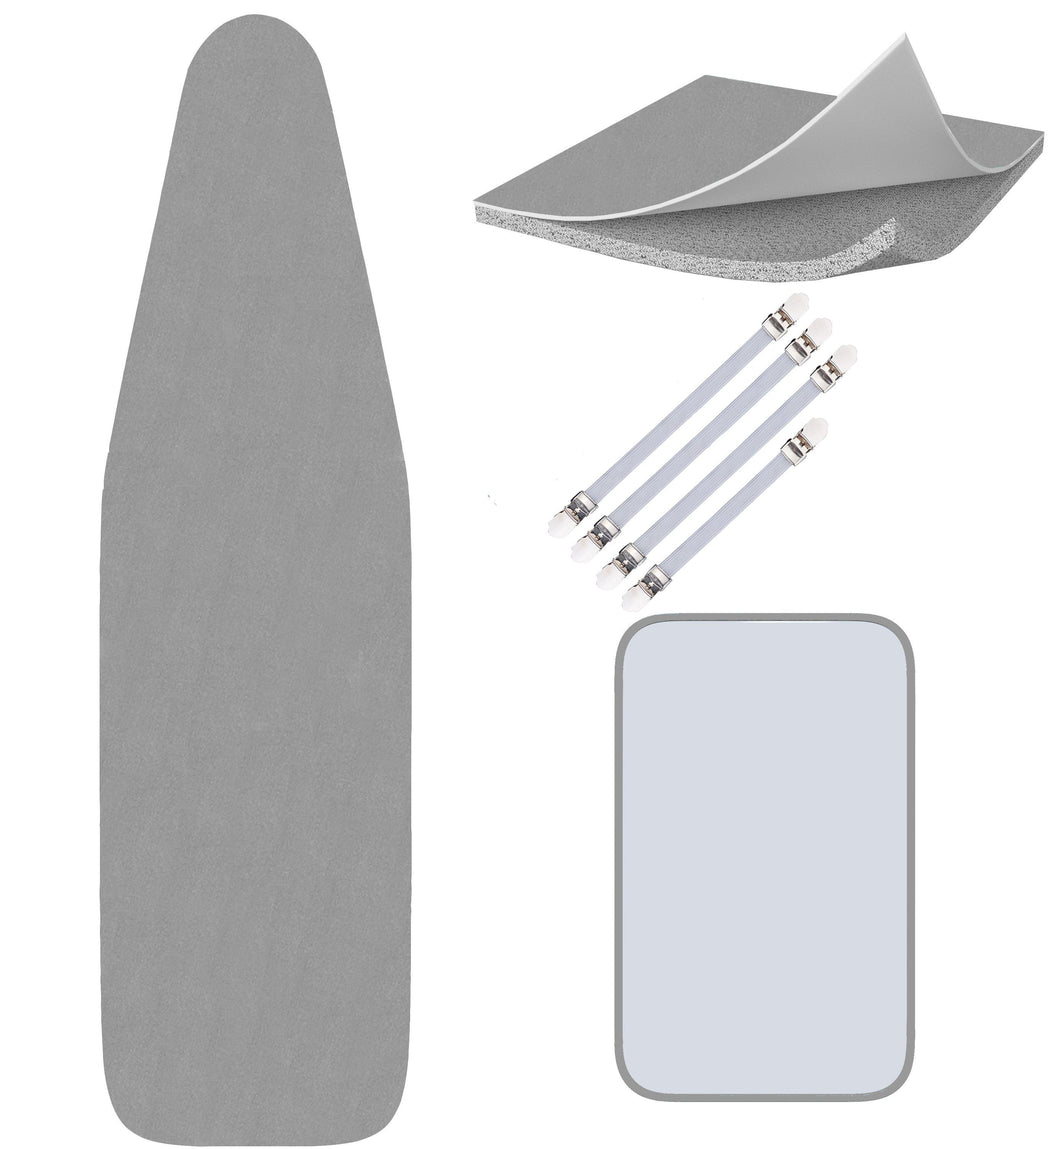 Silicone Ironing Board Cover - Scorch Proof with Bonus Adjustable Fasteners and Protective Mesh (15